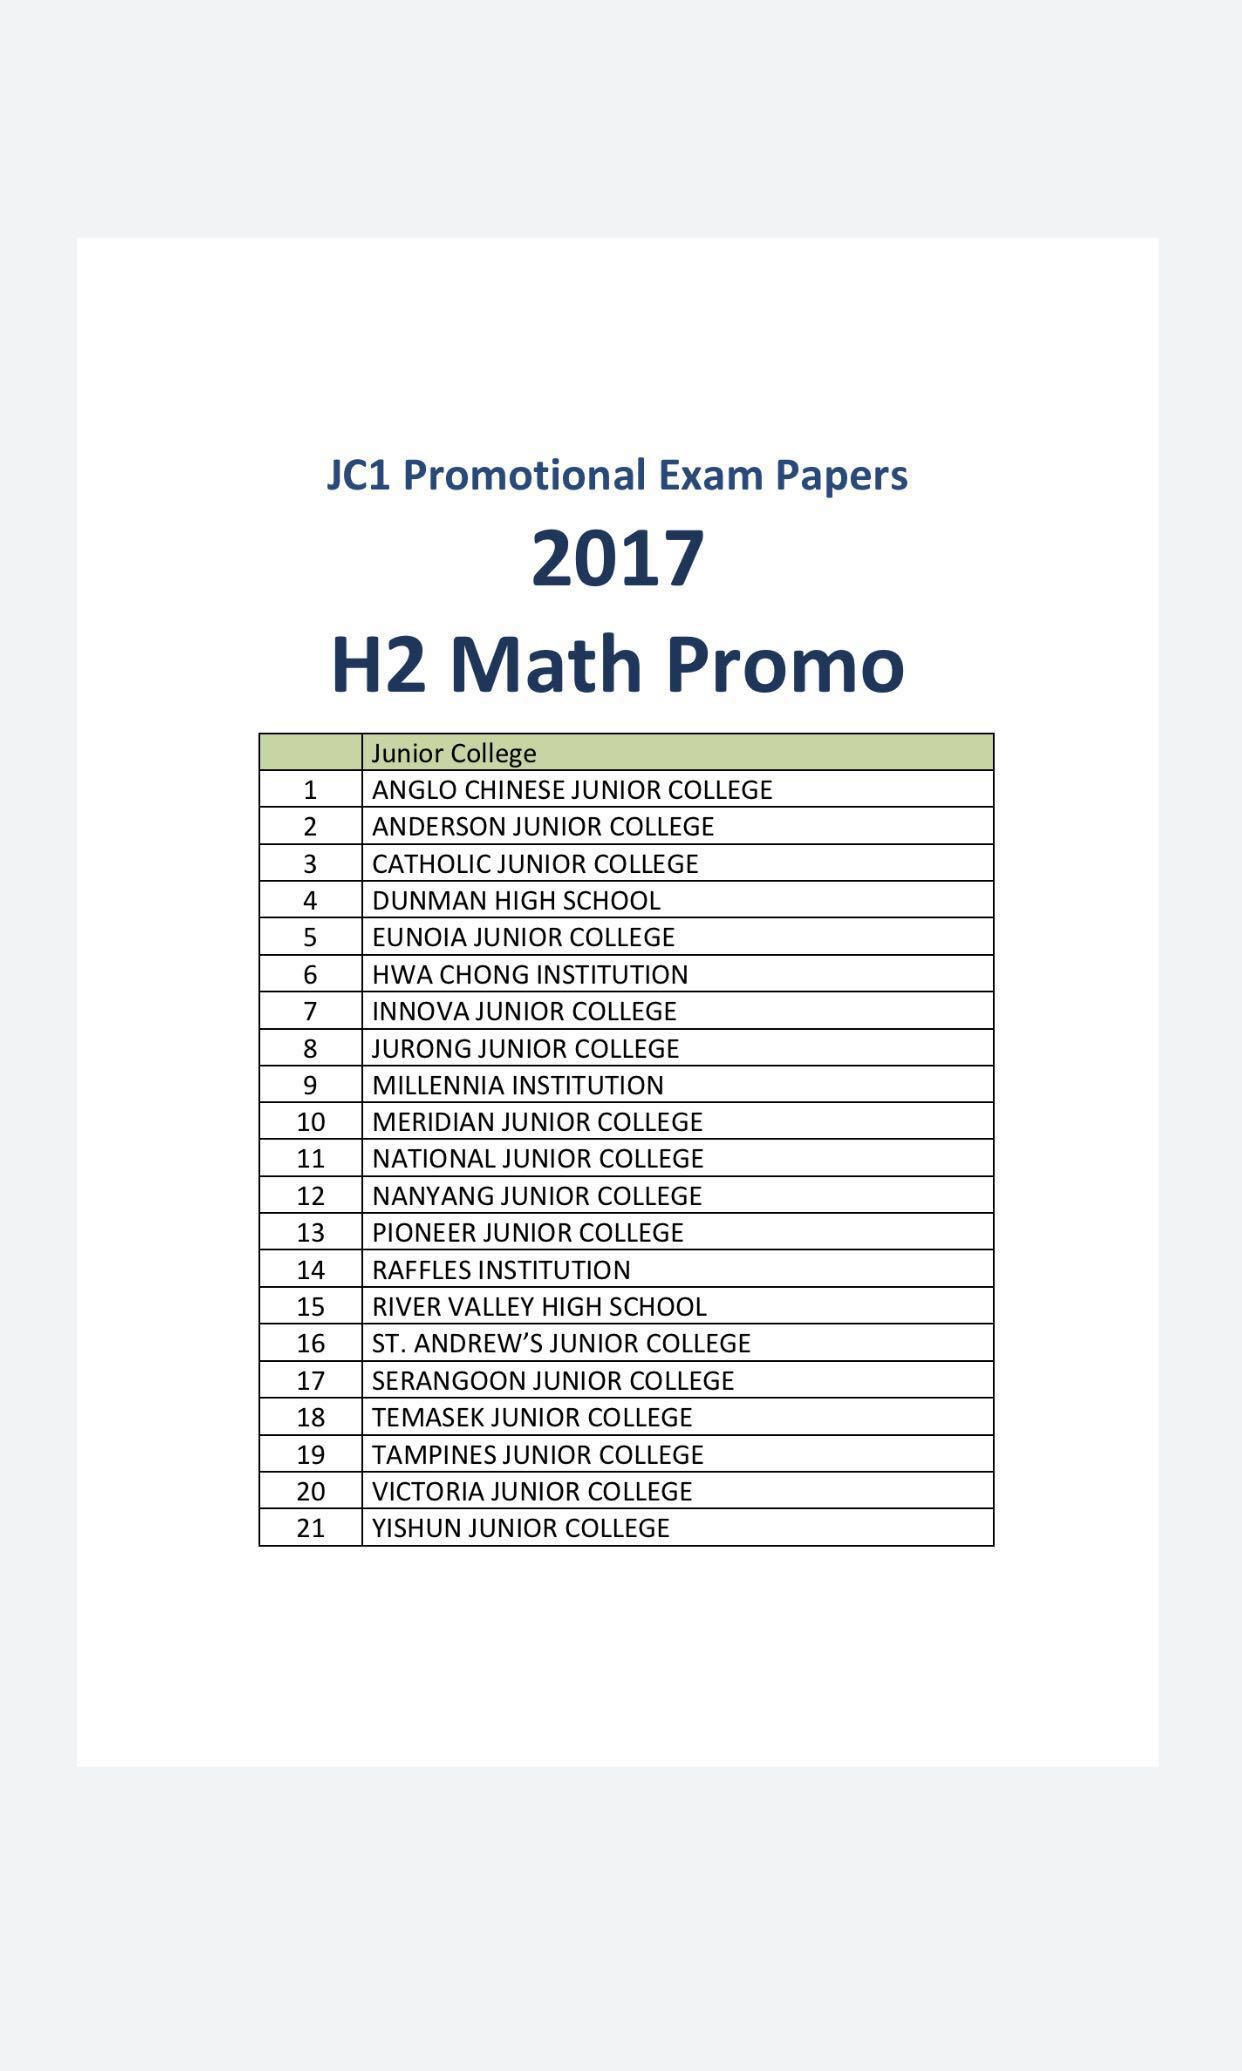 2017 A Level Junior College JC1 H2 Maths Promotional Exam Papers ...